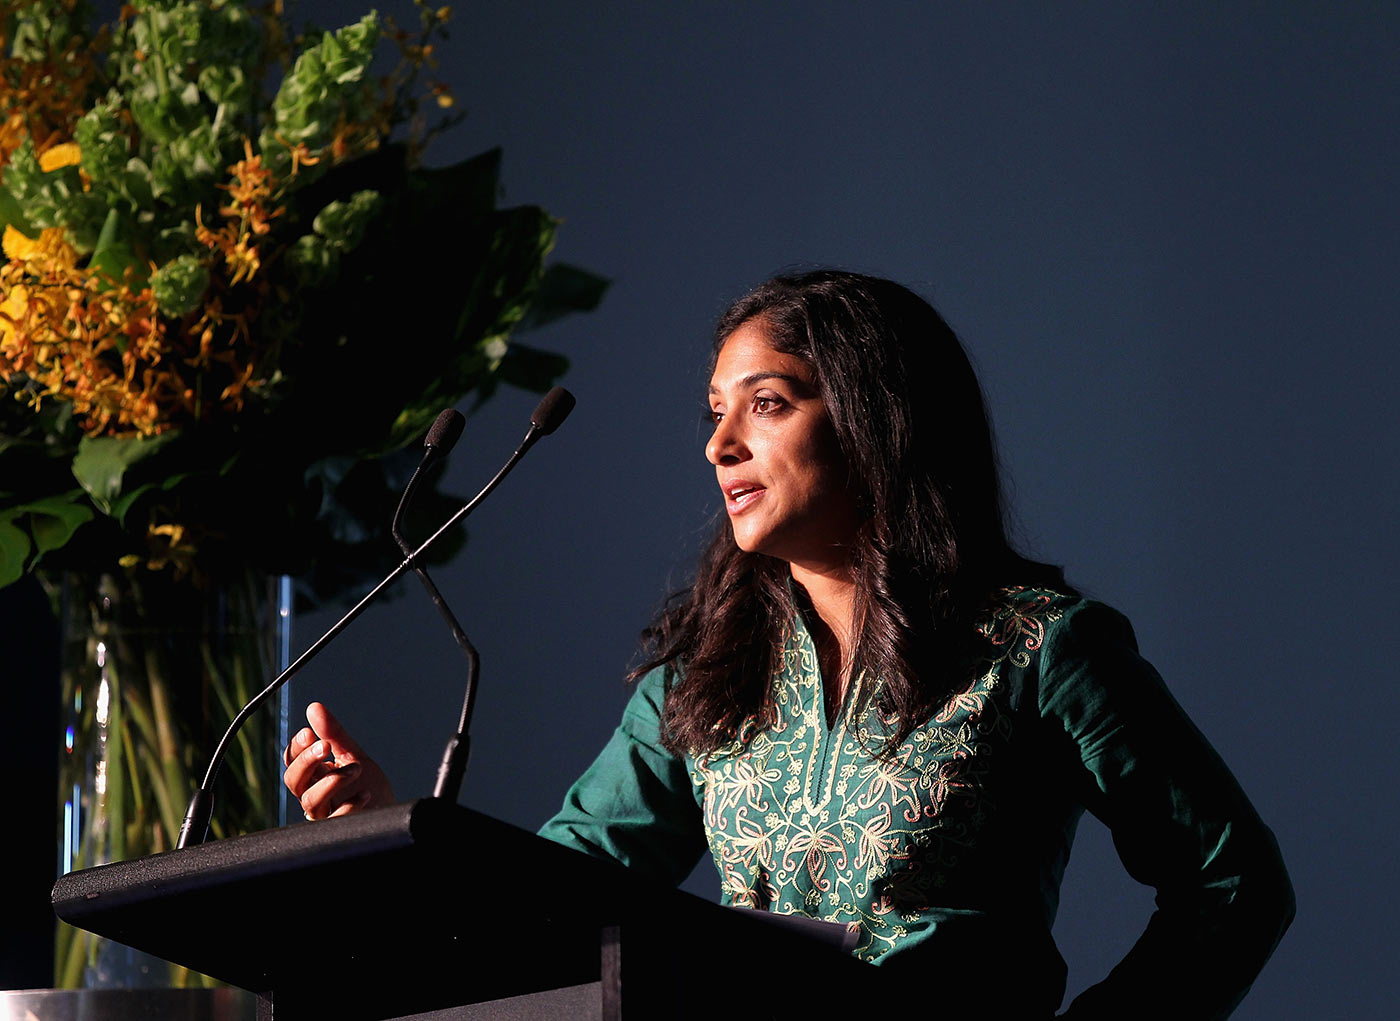 Lisa Sthalekar made it to commentating on a men's game within two years of her retirement from playing